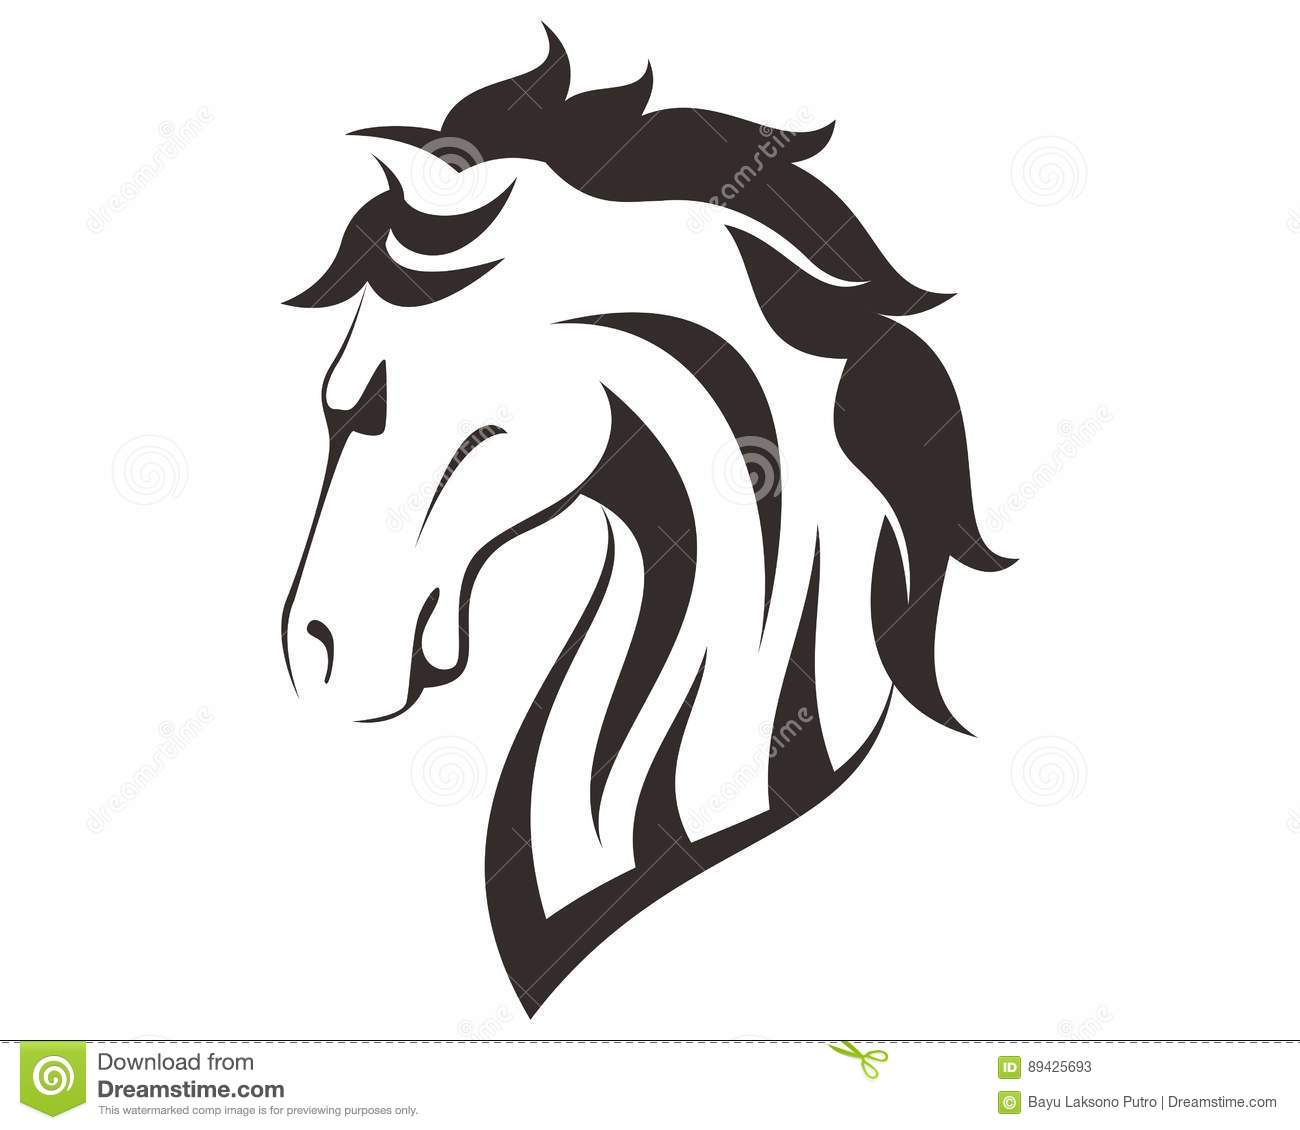 Illustration t te de cheval de dessin de sch ma illustration stock illustration du logo - Des dessin de cheval ...